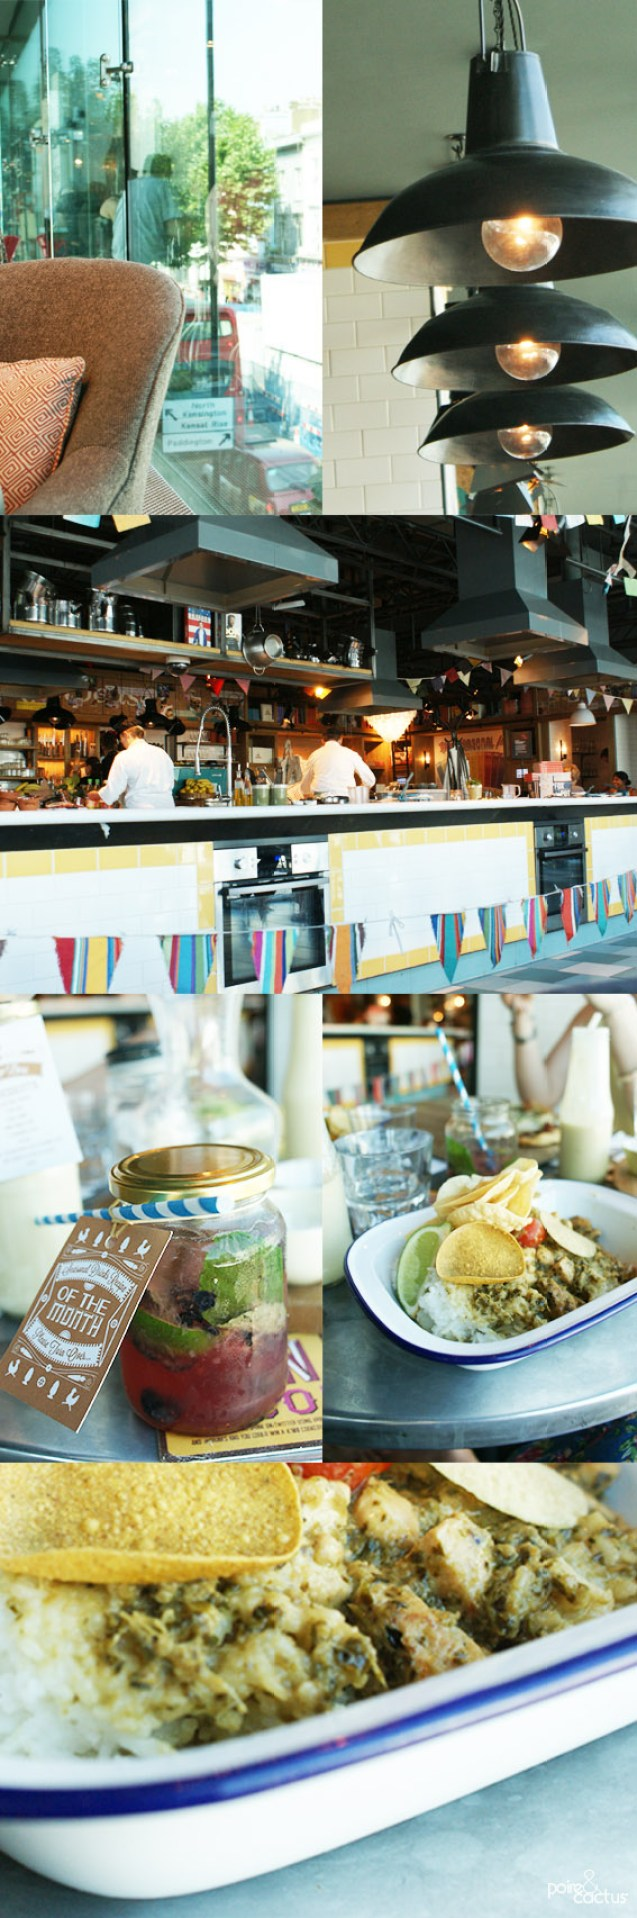 poiretcactus_jamie_oliver_restaurant_nothinghill